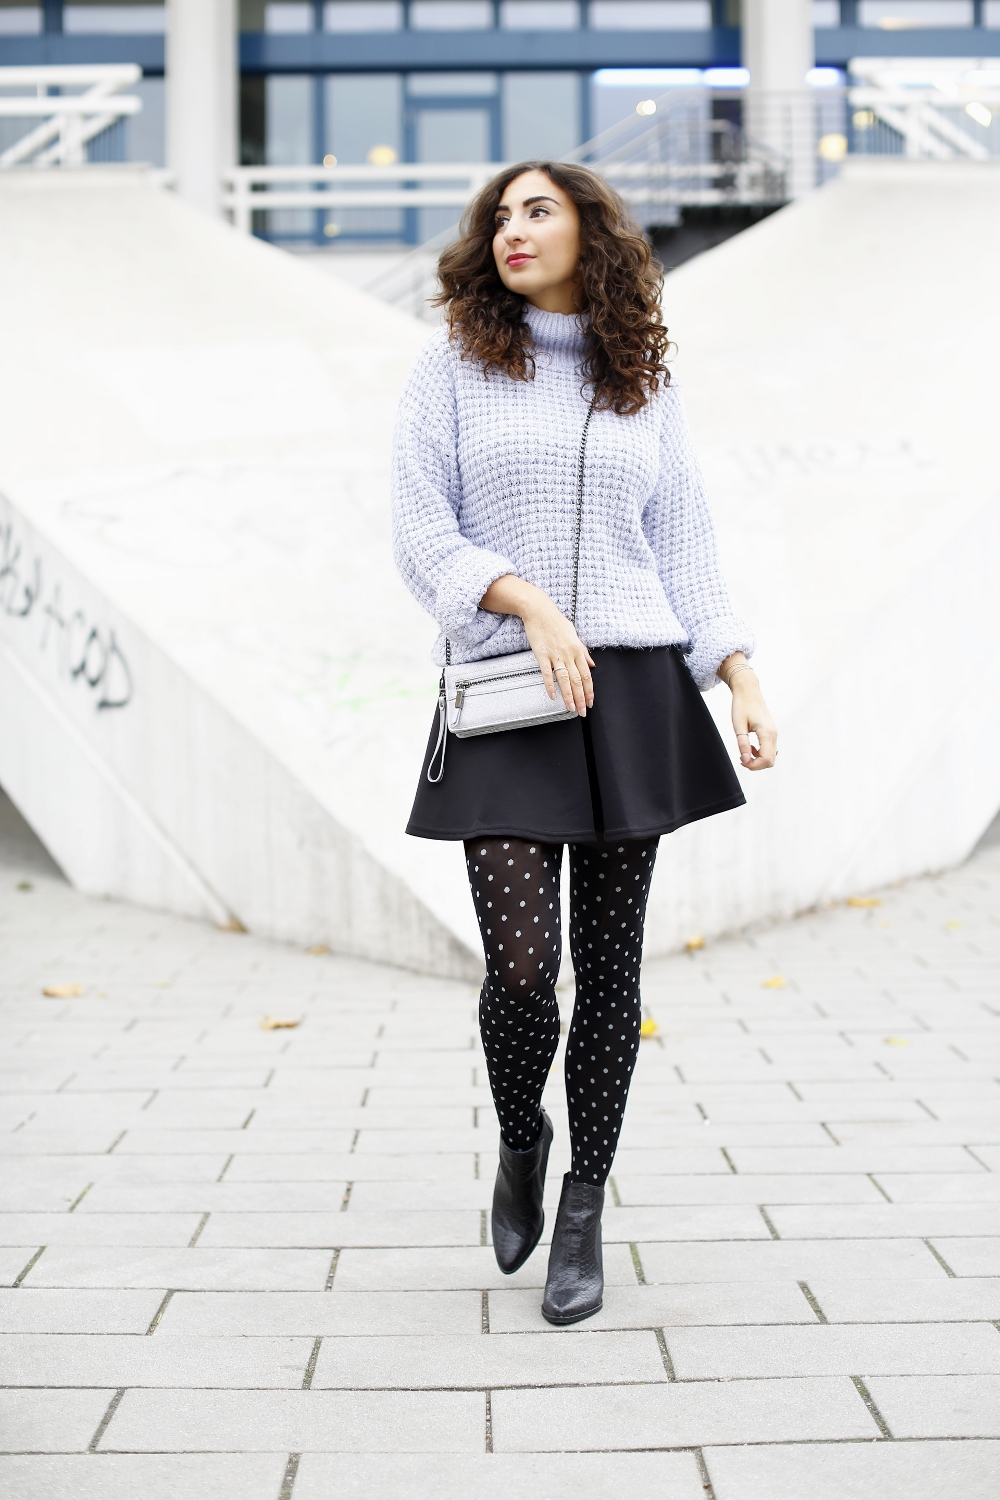 2019 year lifestyle- How to skater wear skirt with tights